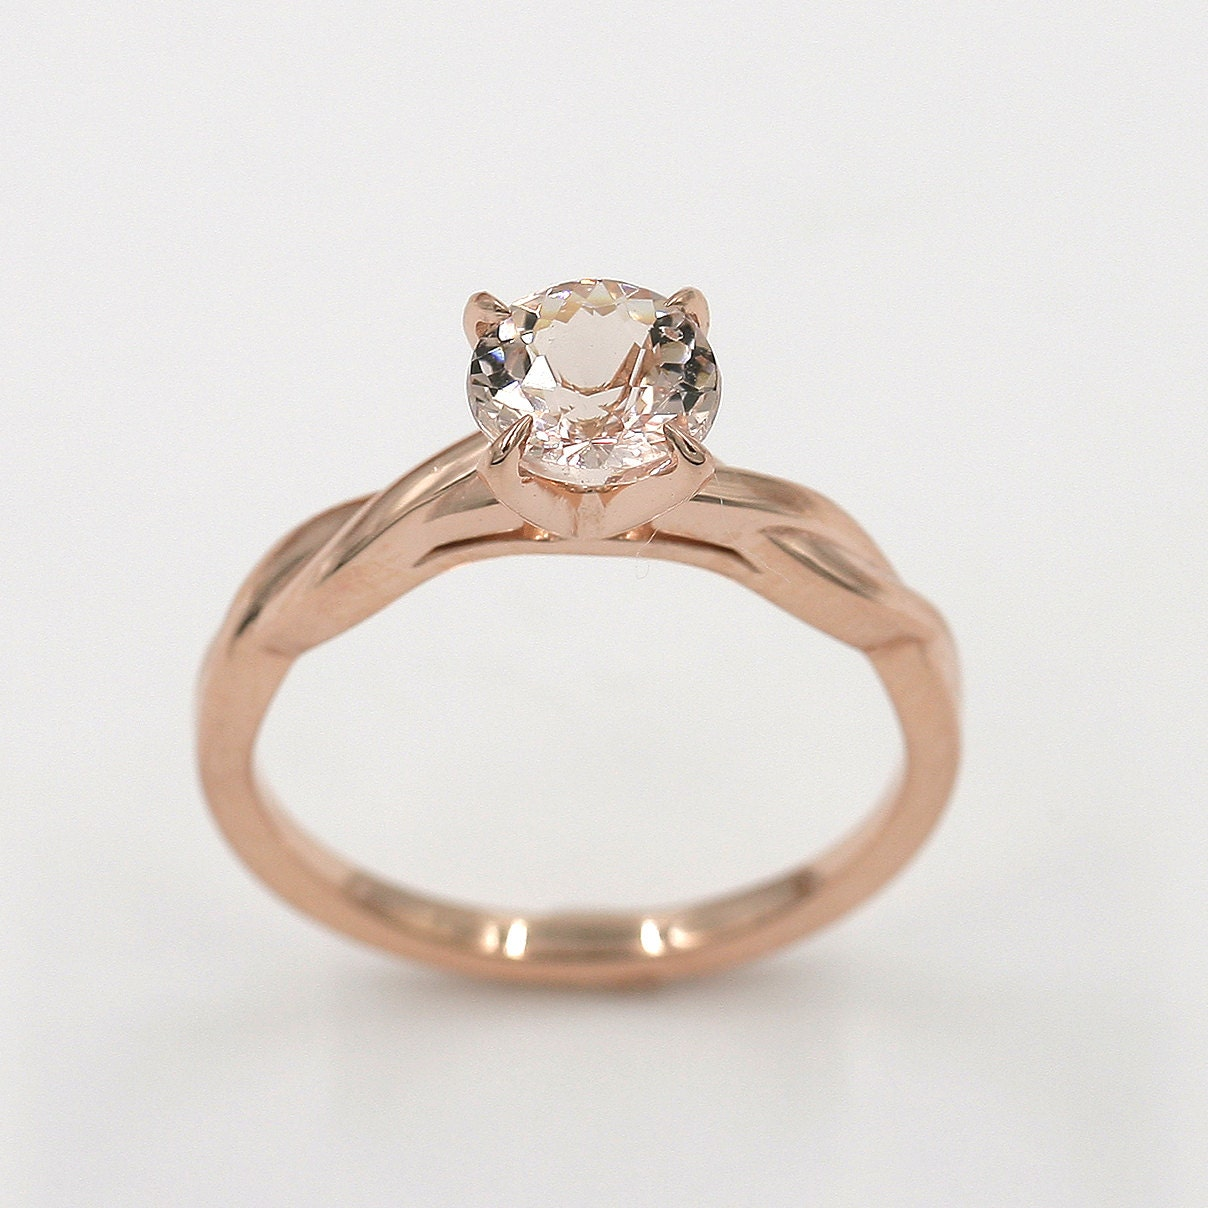 Morganite Engagement Ring Simple Wedding Ring Rose Gold